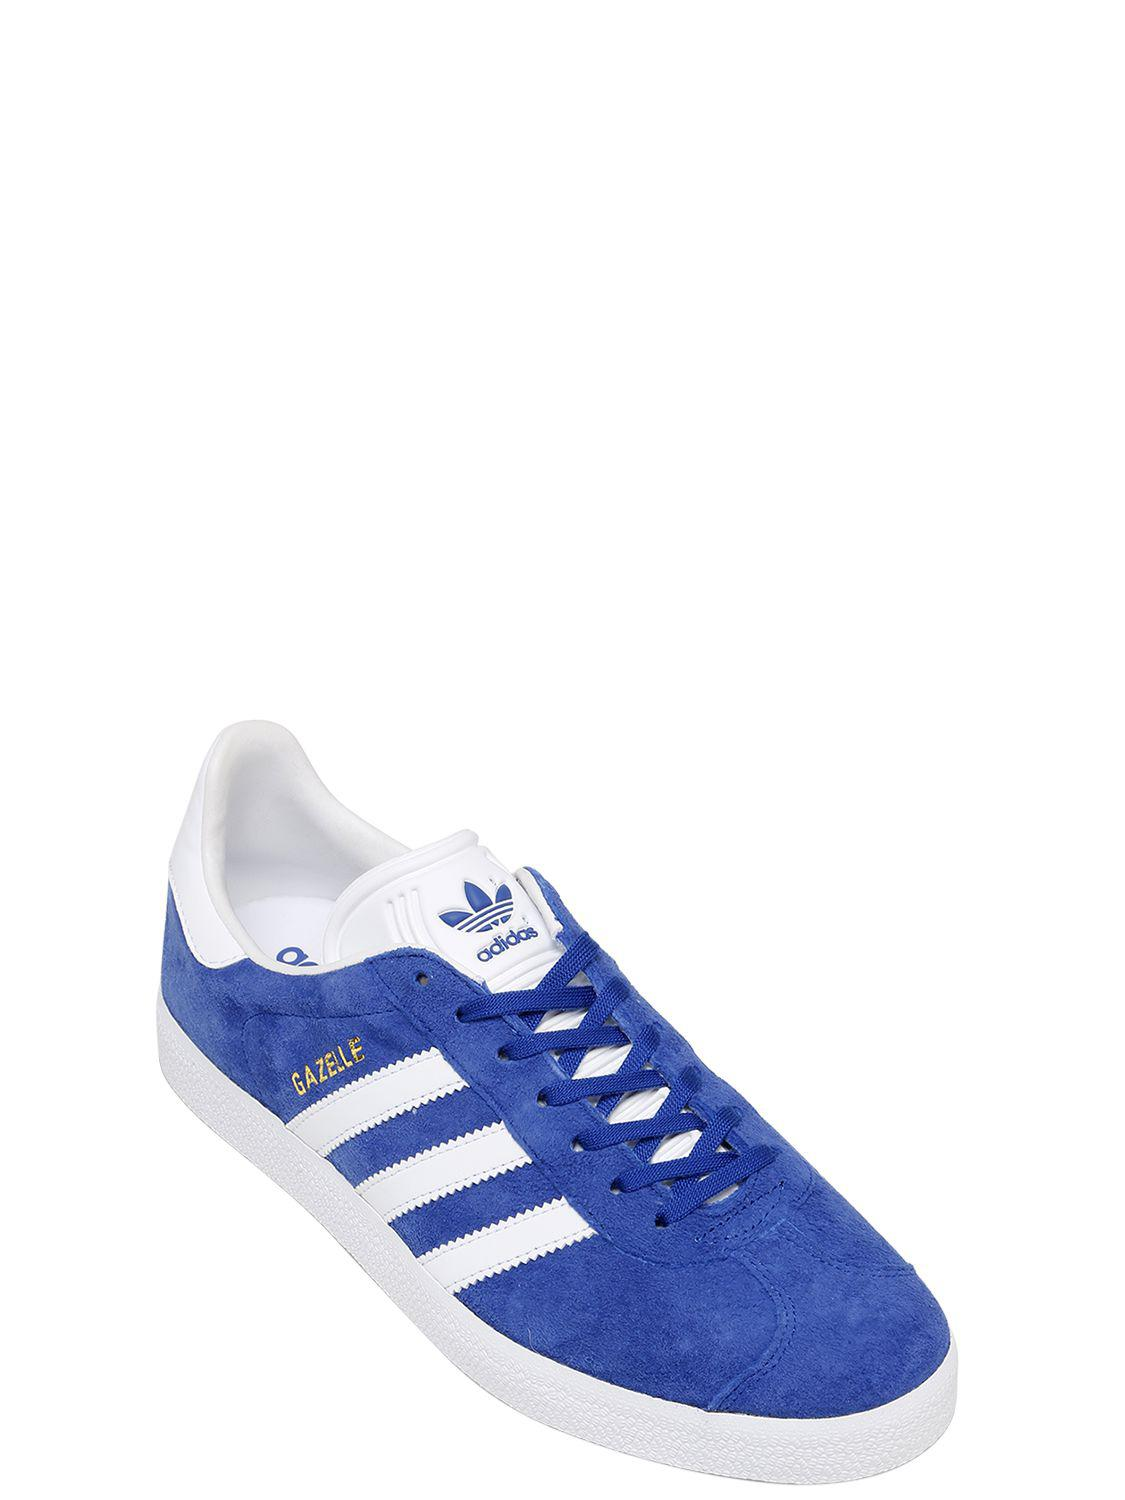 premium selection 8e71a e94c1 Lyst - Adidas Originals Gazelle Leather Sneakers in Blue for Men - Save  56.03448275862069%